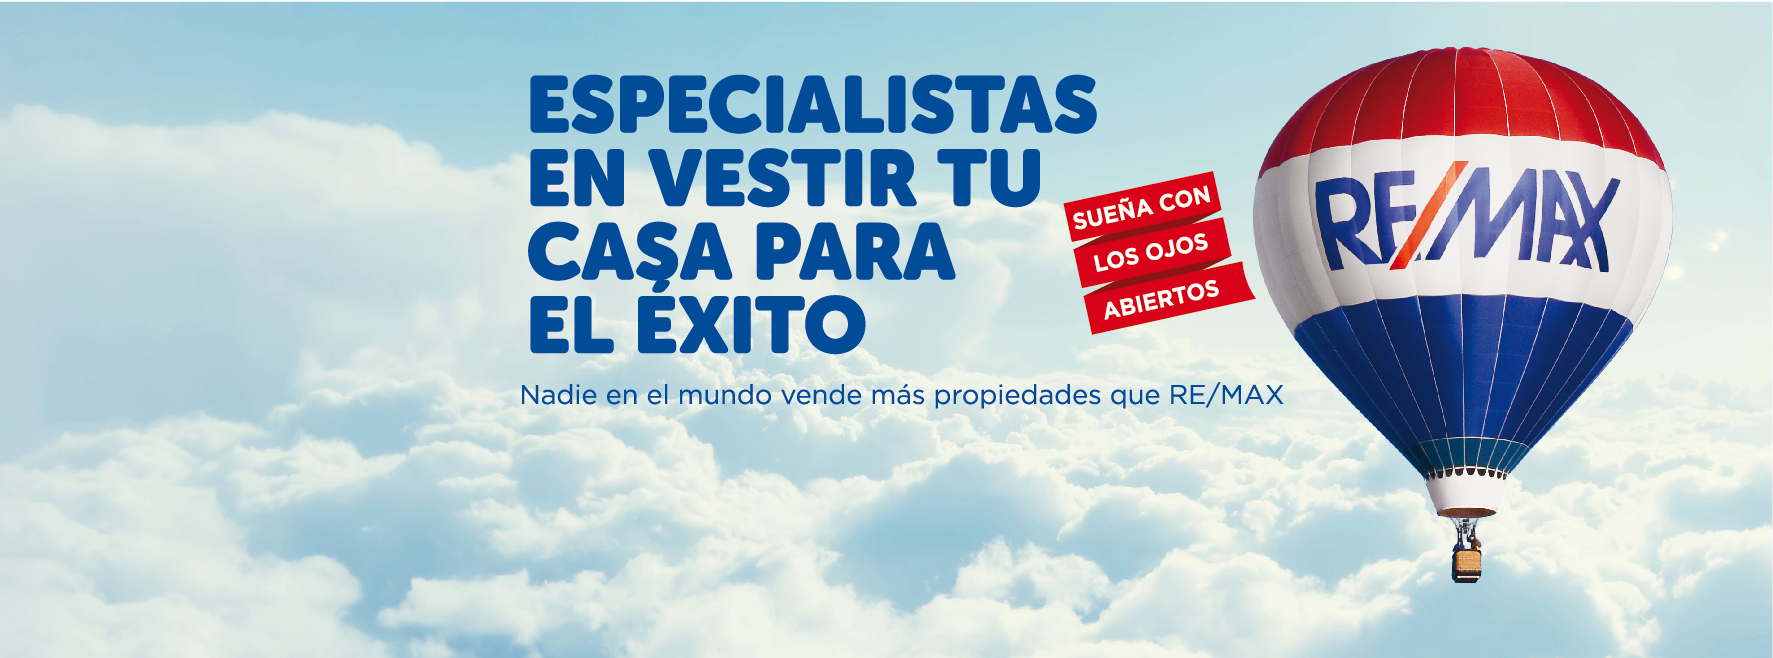 remax home staging vender casa en madrid